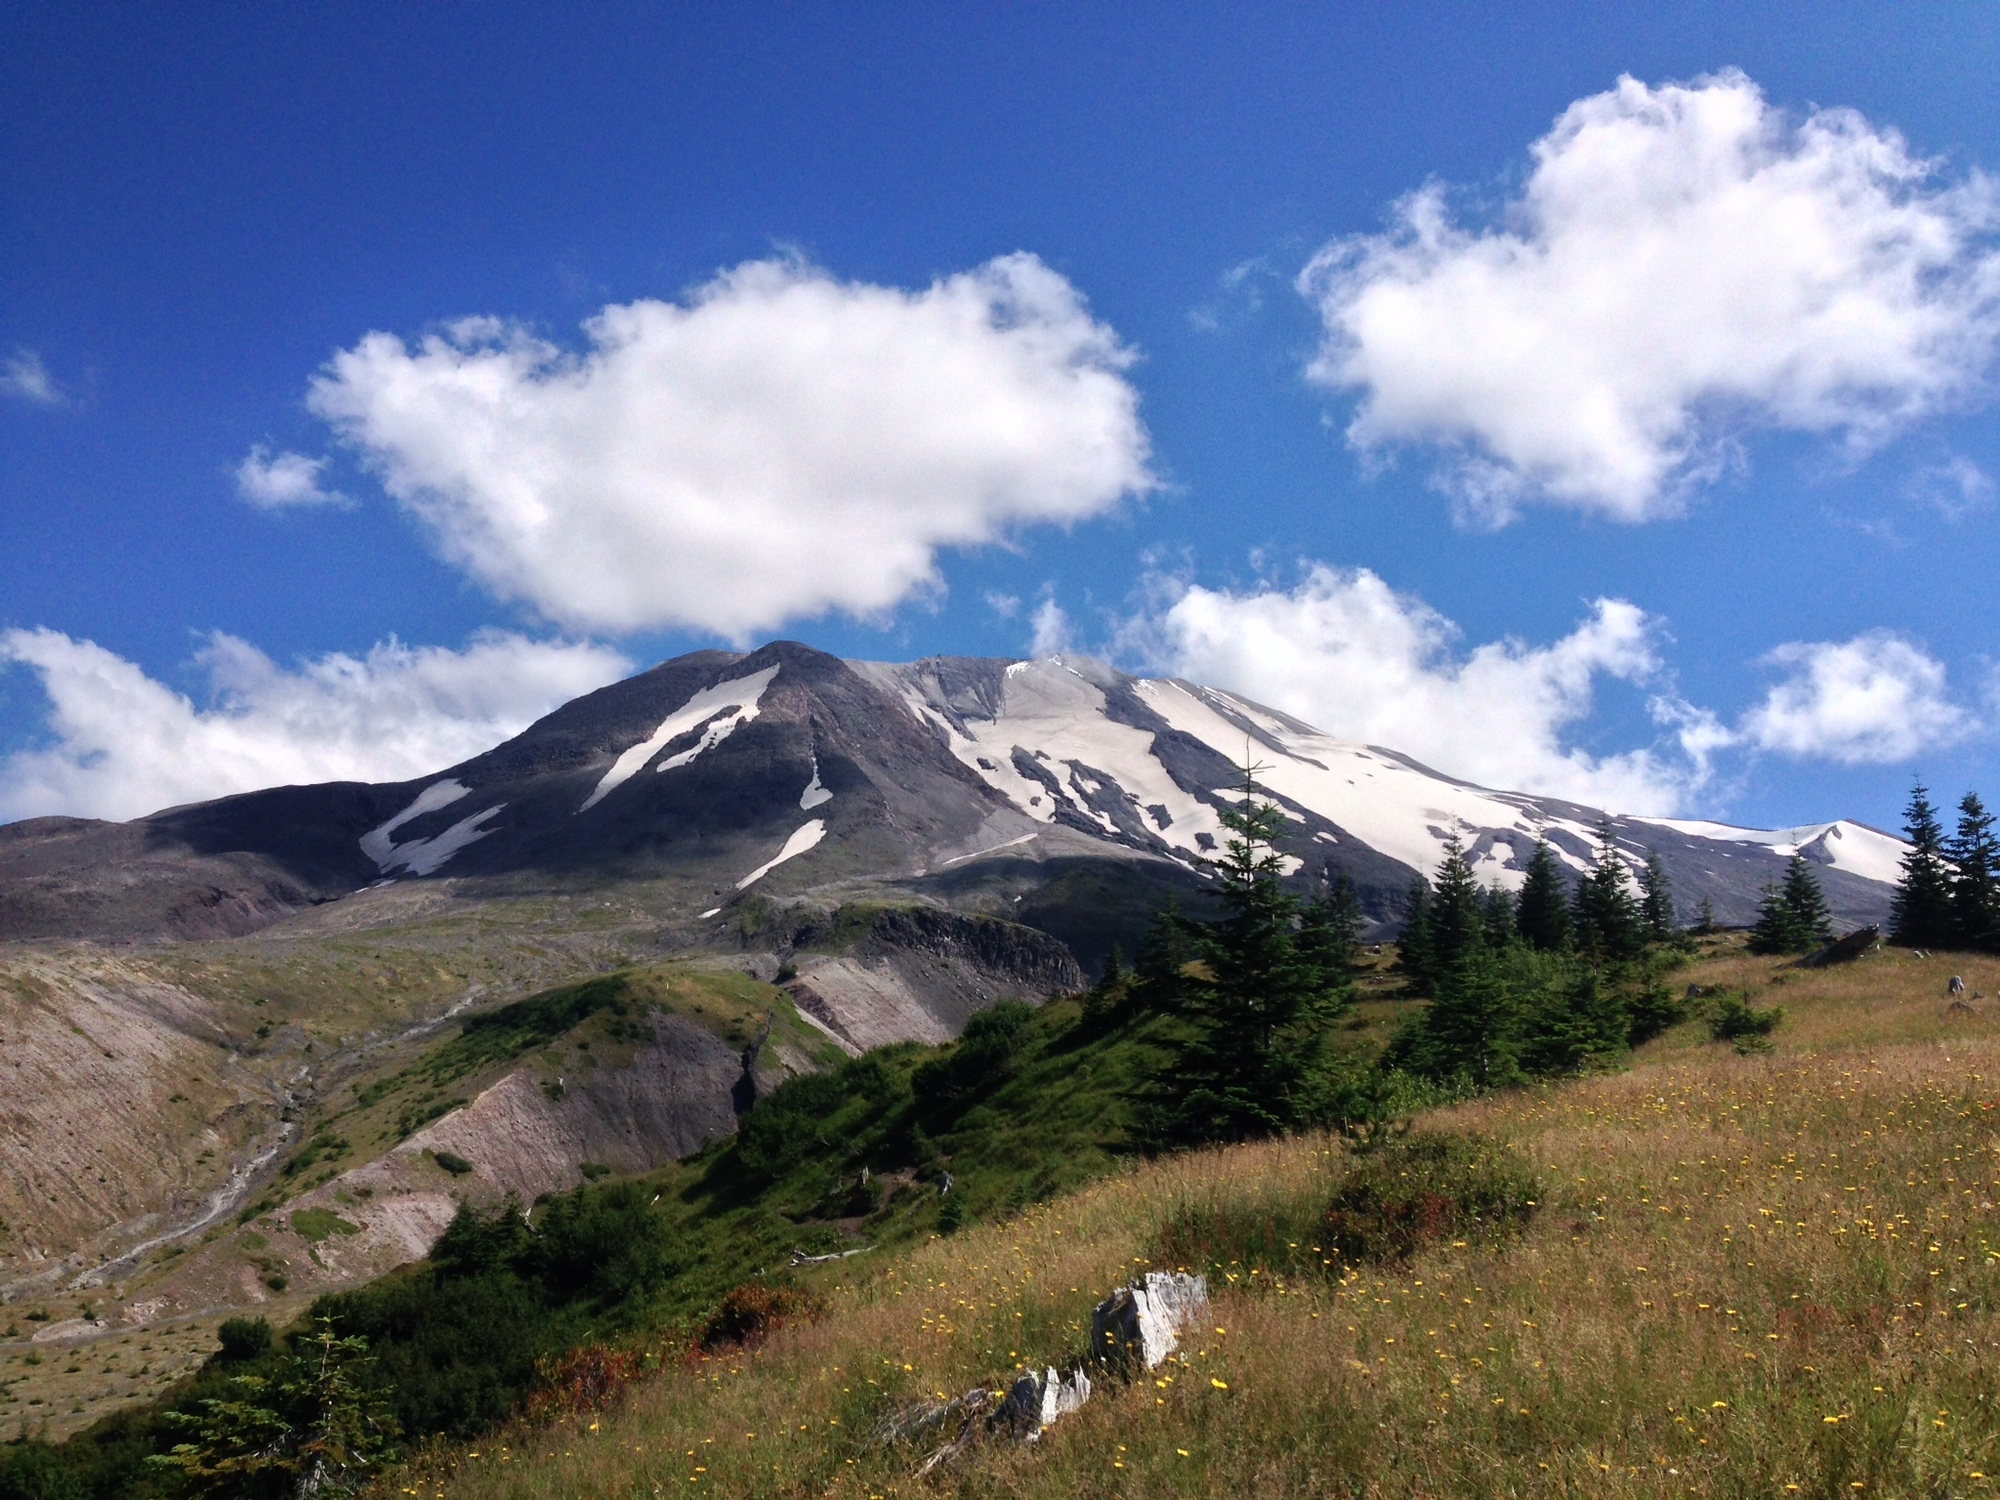 Backpacking Loowit Trail, Washington